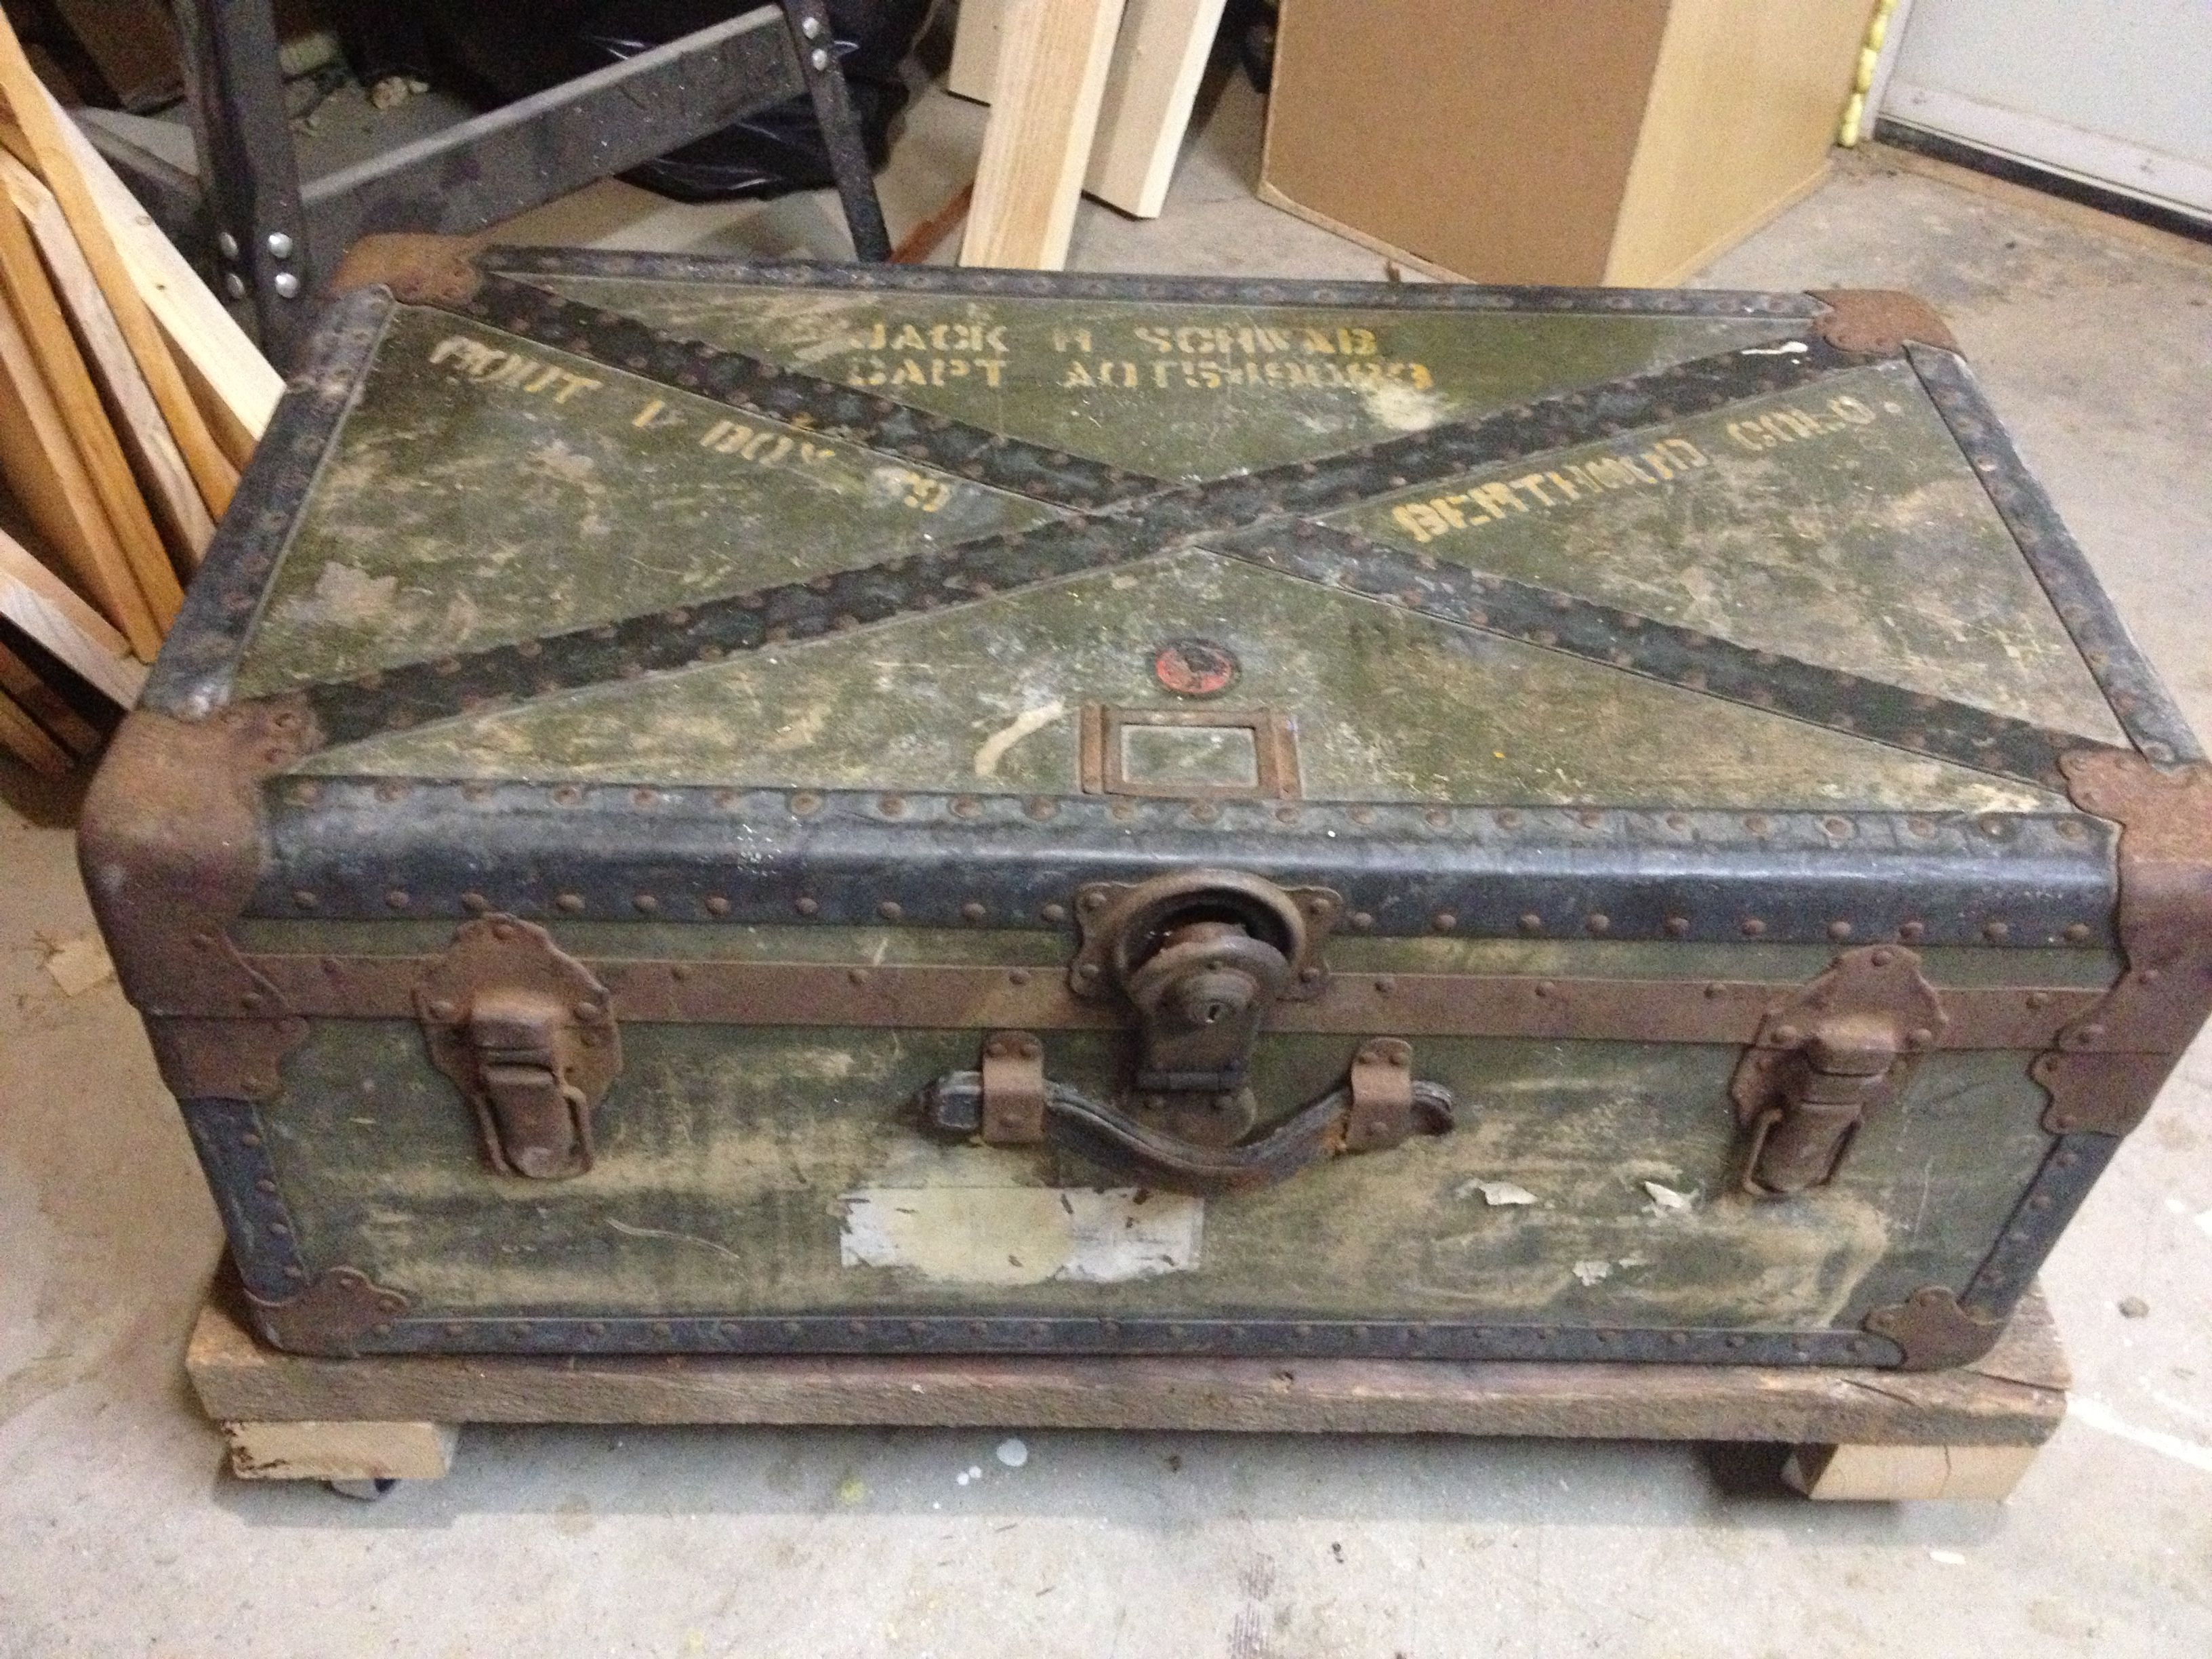 Steamer Trunk Furniture Old Military Trunk And Reclaimed 2x4s With Metal Caster Wheels